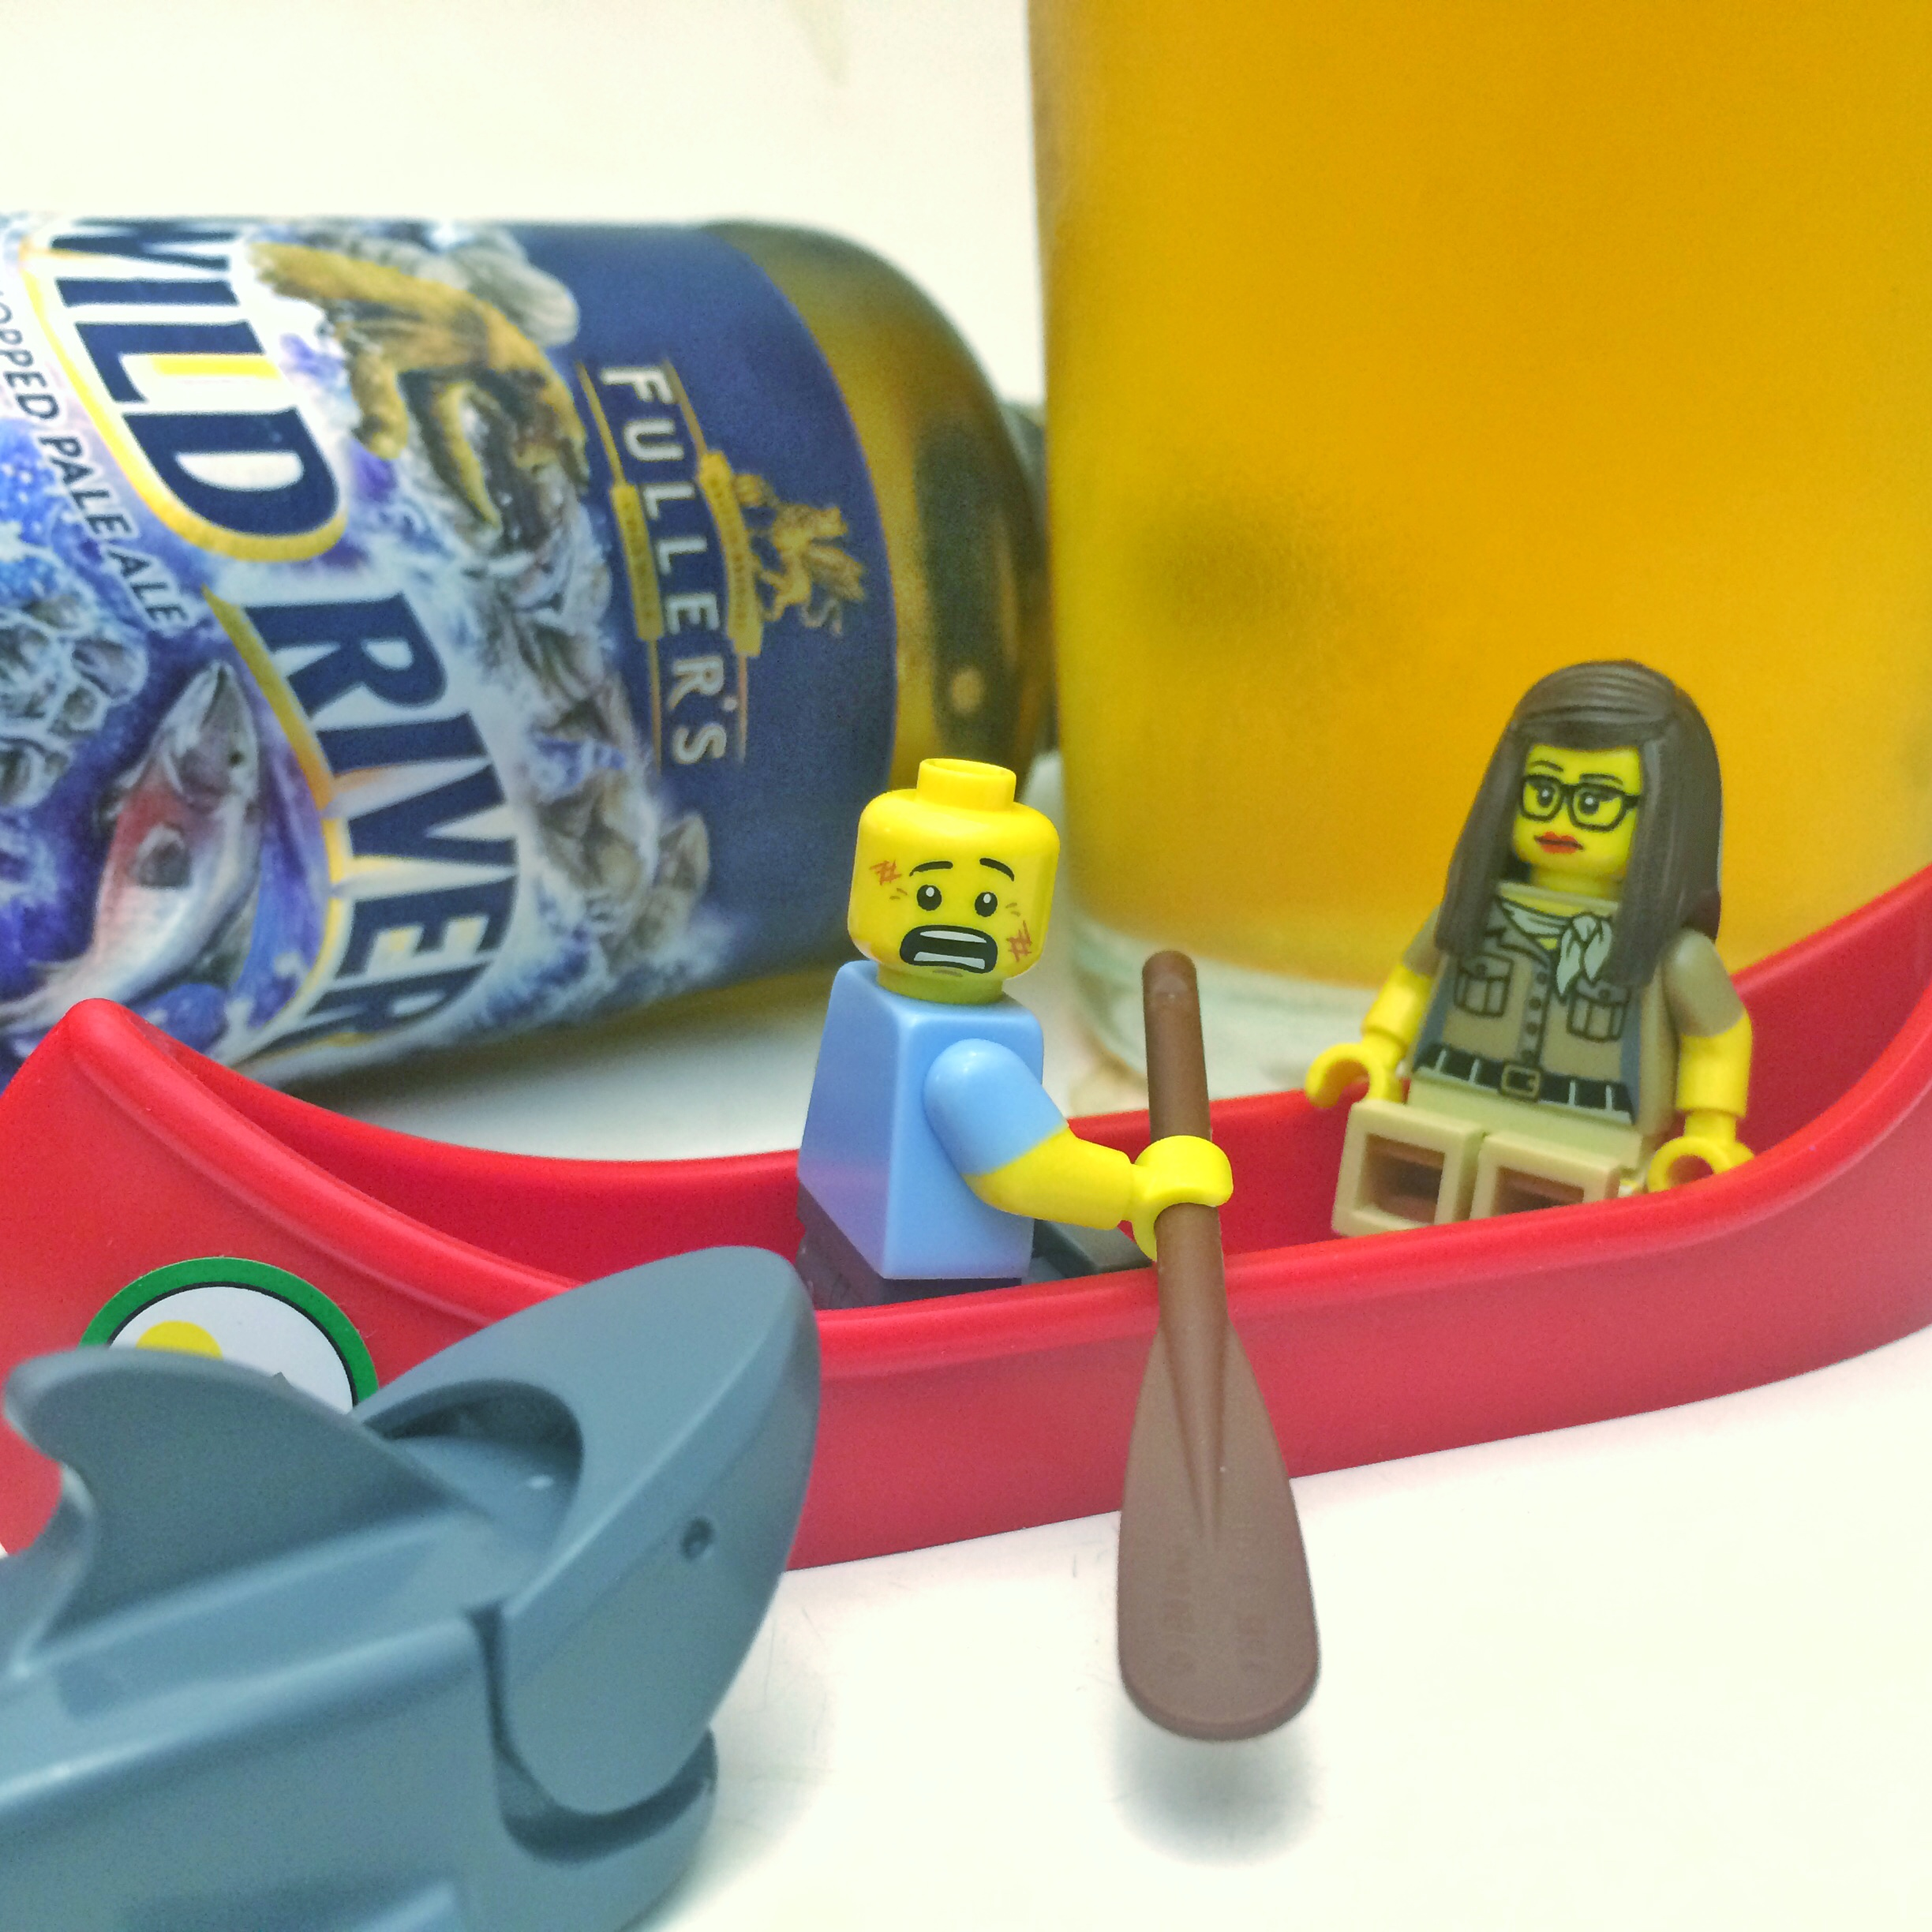 Lego goes well with everything – even beer